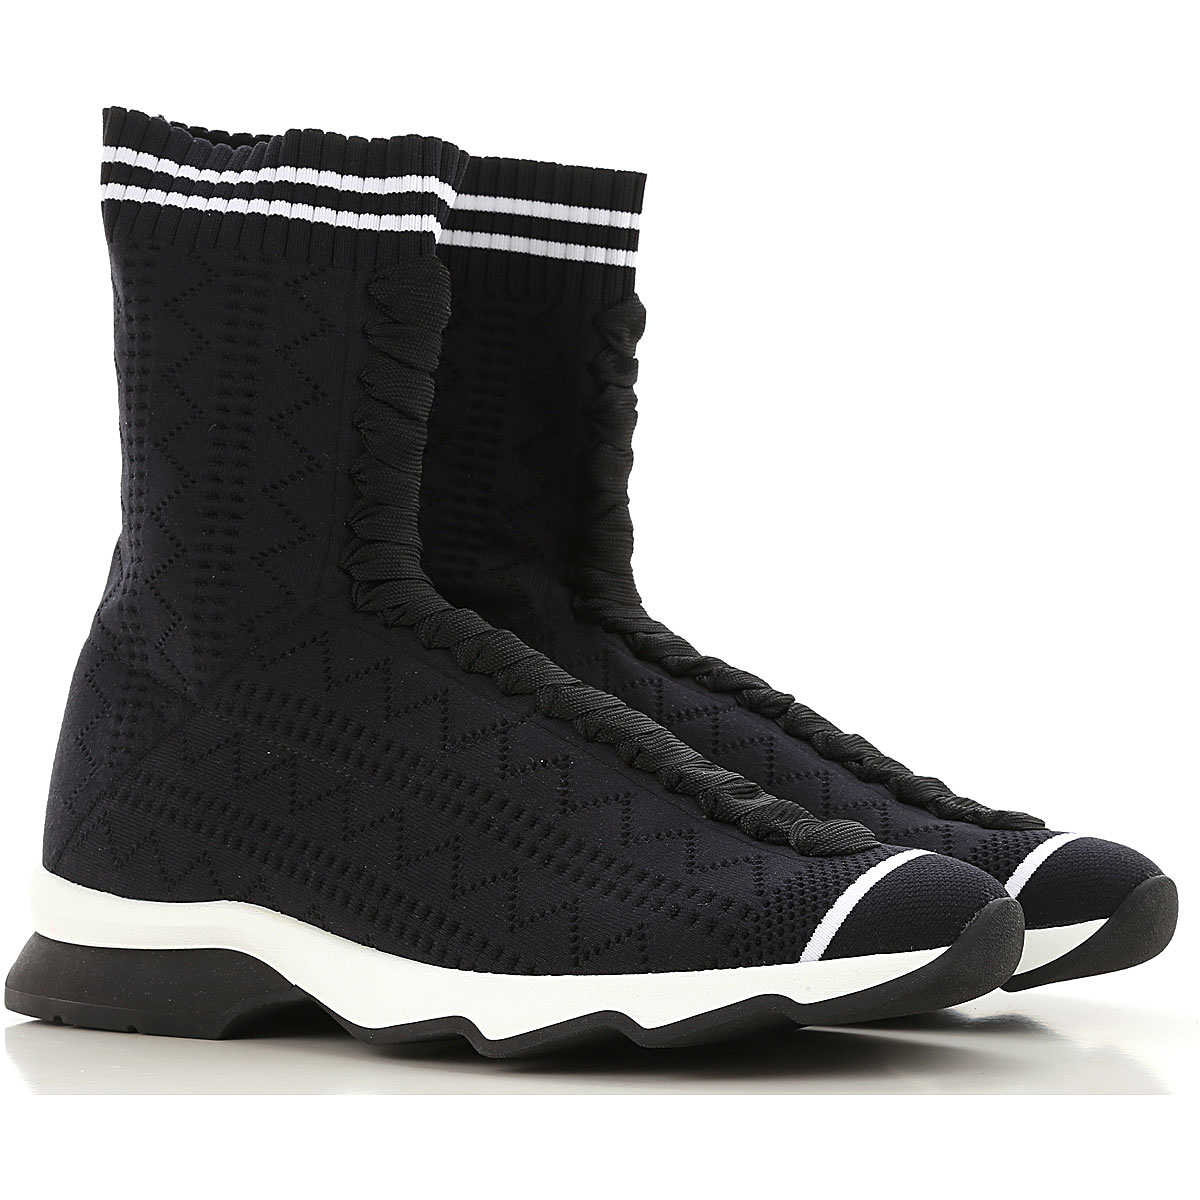 Fendi Boots for Women Booties On Sale DK - GOOFASH - Womens BOOTS